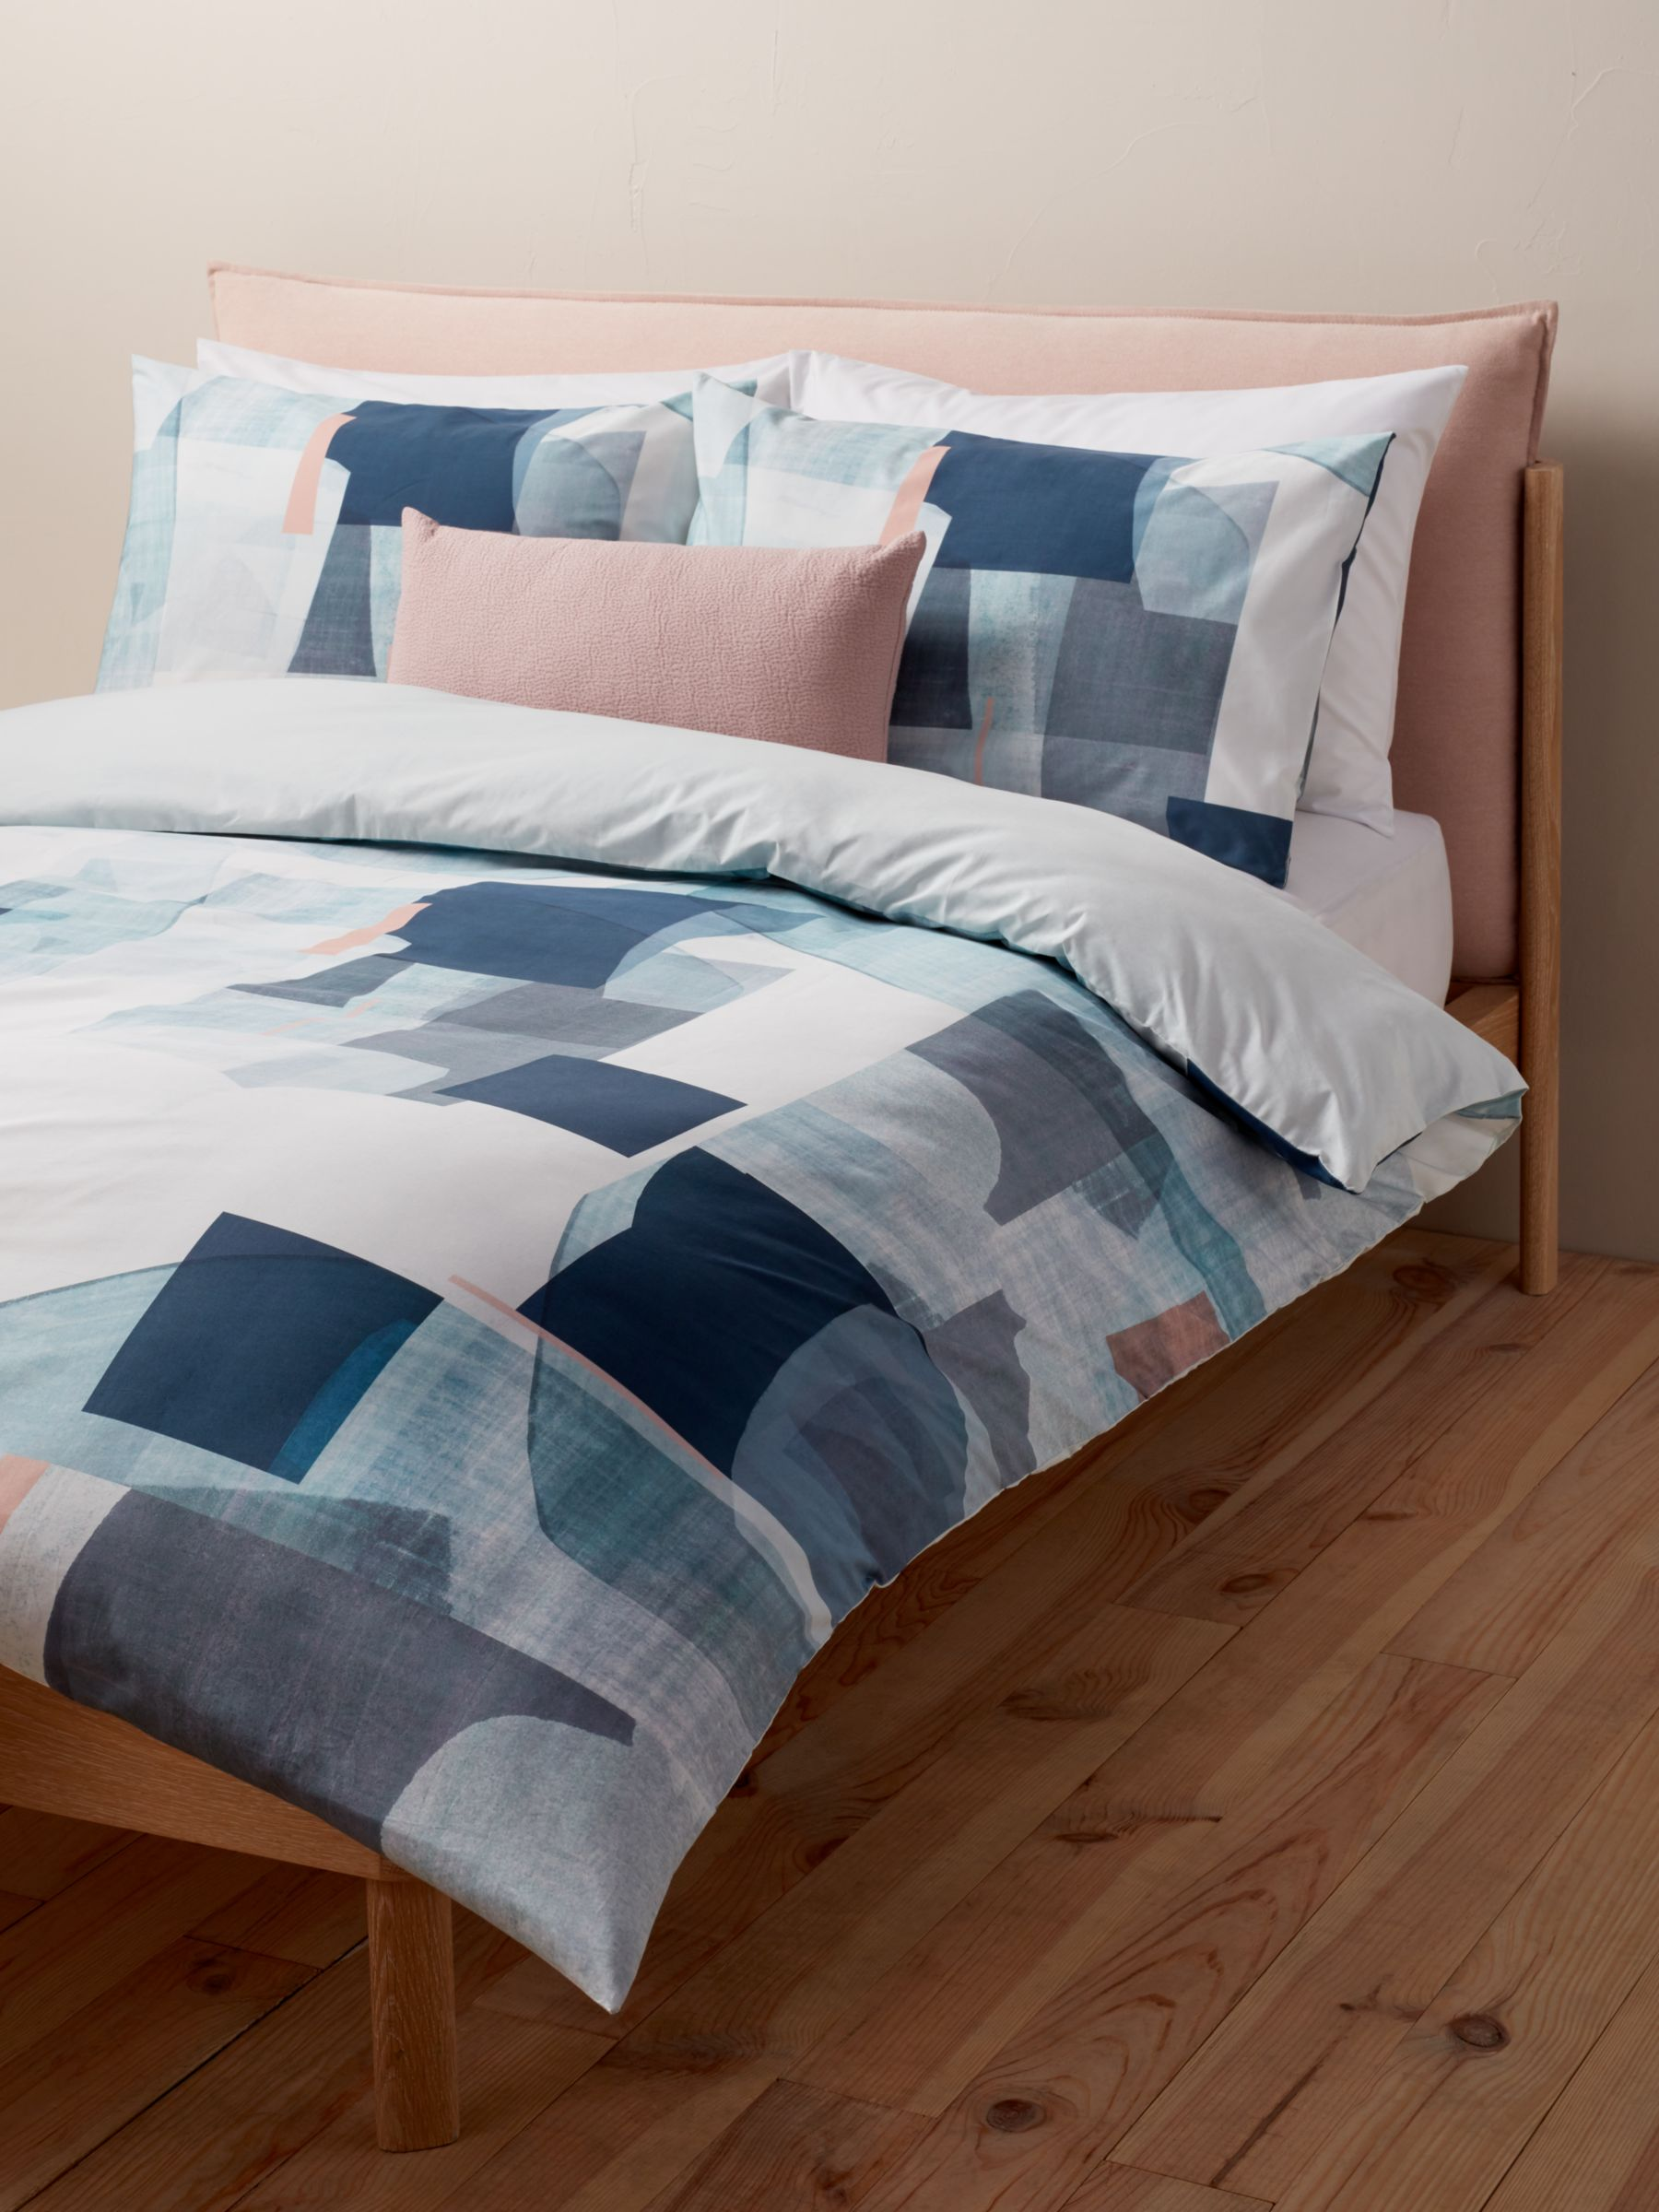 Design Project by John Lewis Design Project by John Lewis No.198 Bedding, Blue / Multi